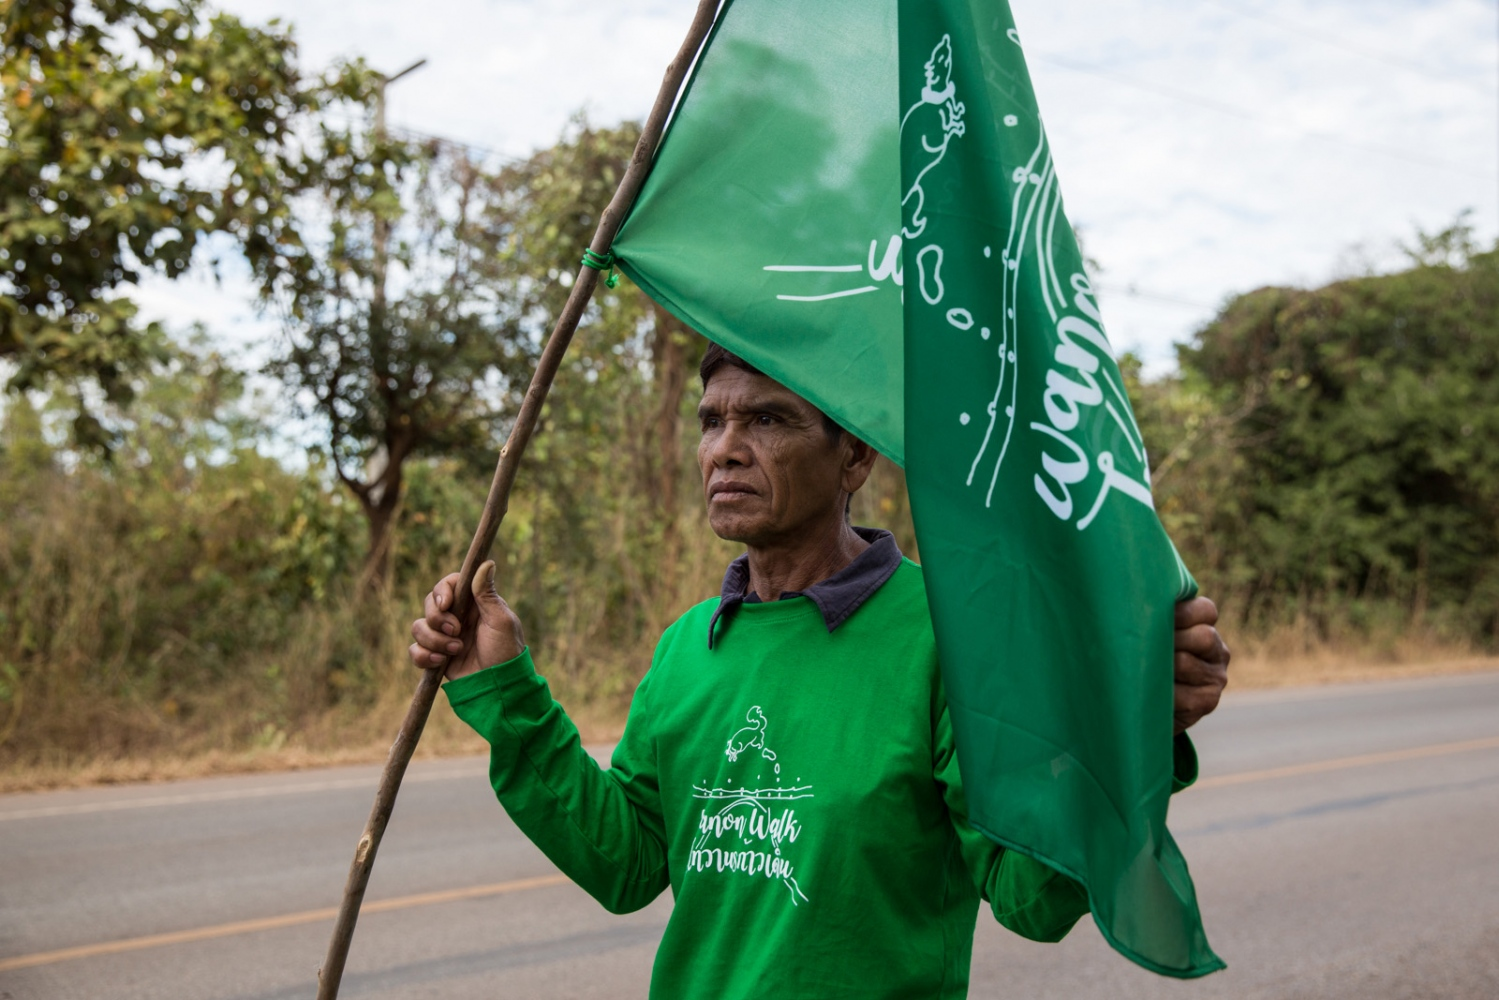 A villager member holds a Wamon Walk flag during the first day of walking in protest of a potash mining company.